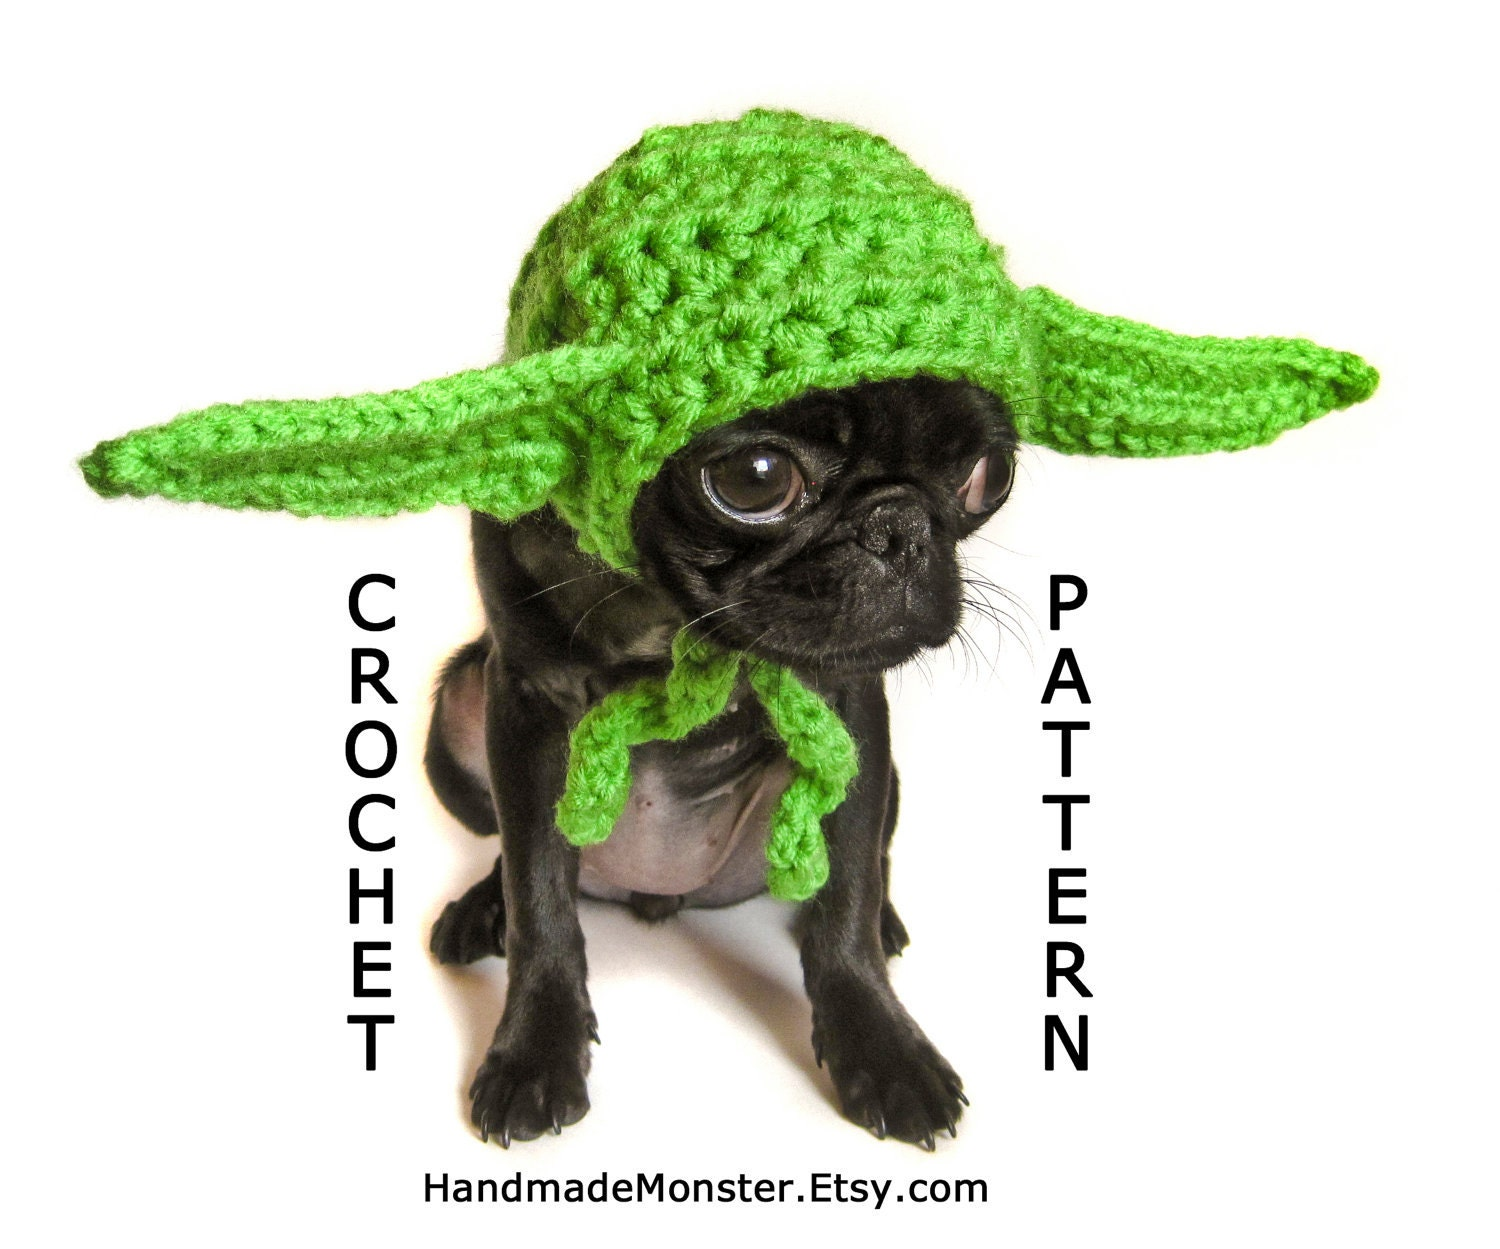 Crochet Patterns Dog : CROCHET DOG HAT pattern yoda star wars inspired by HandmadeMonster